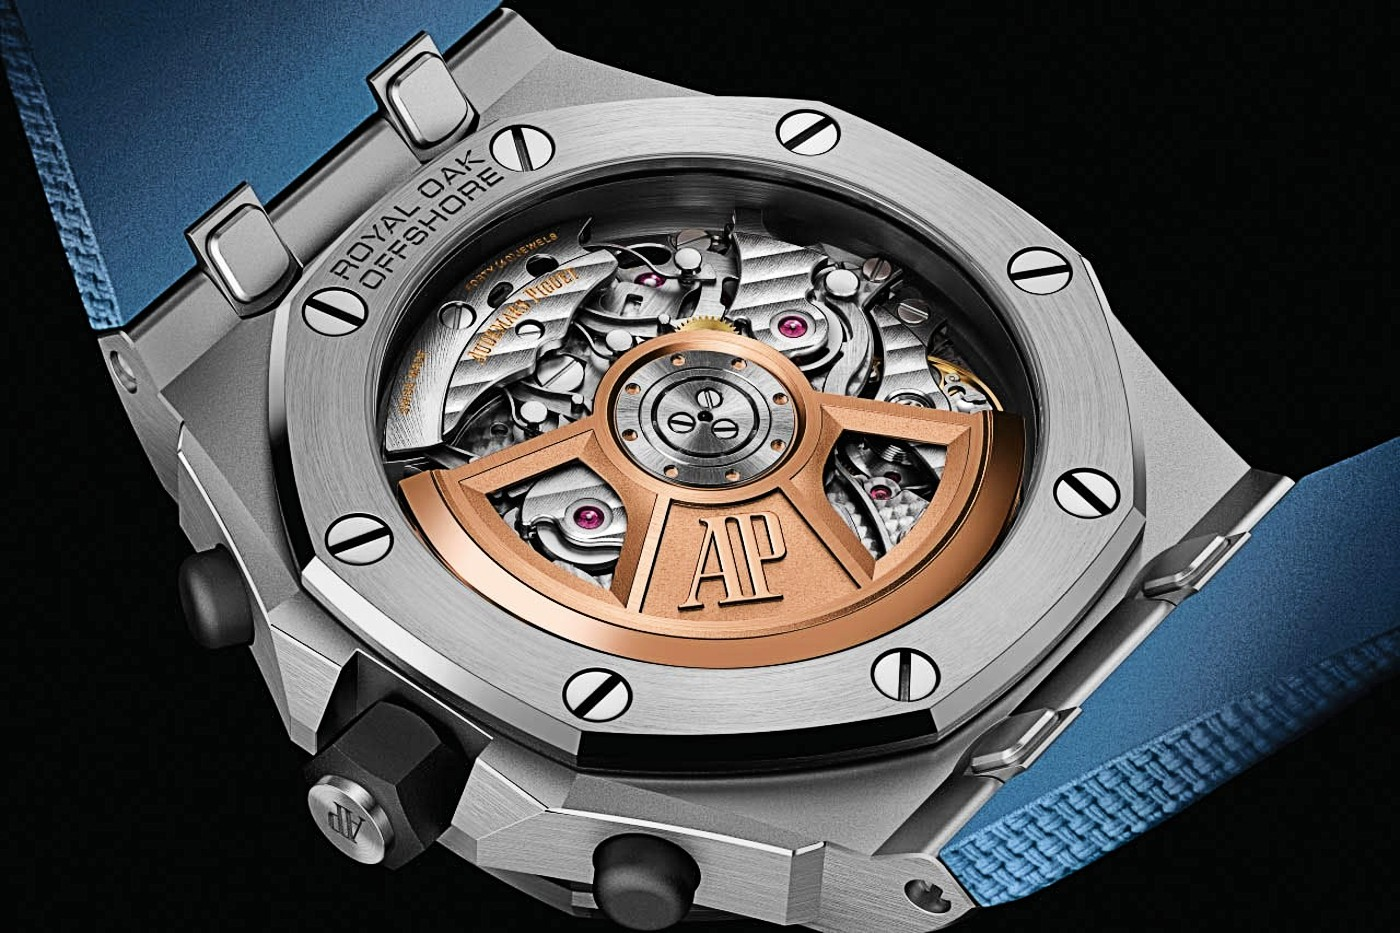 6 The back of the steel Mega Tapisserie Royal Oak Offshore with cal. 4404 1